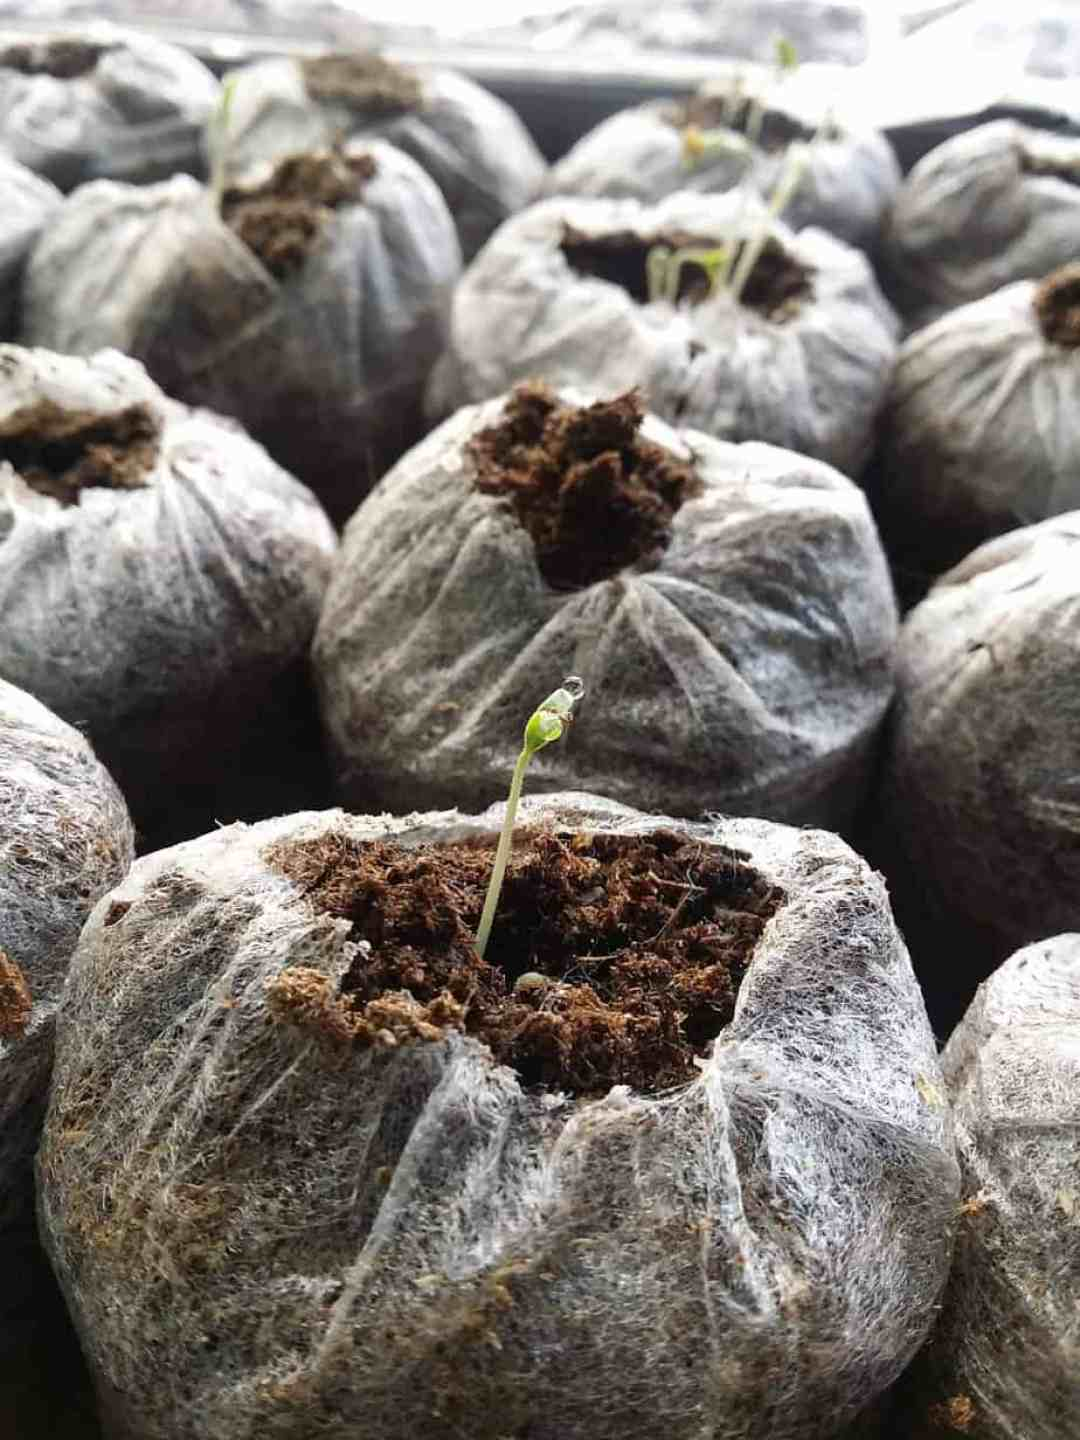 Germinating tomato seeds for the garden